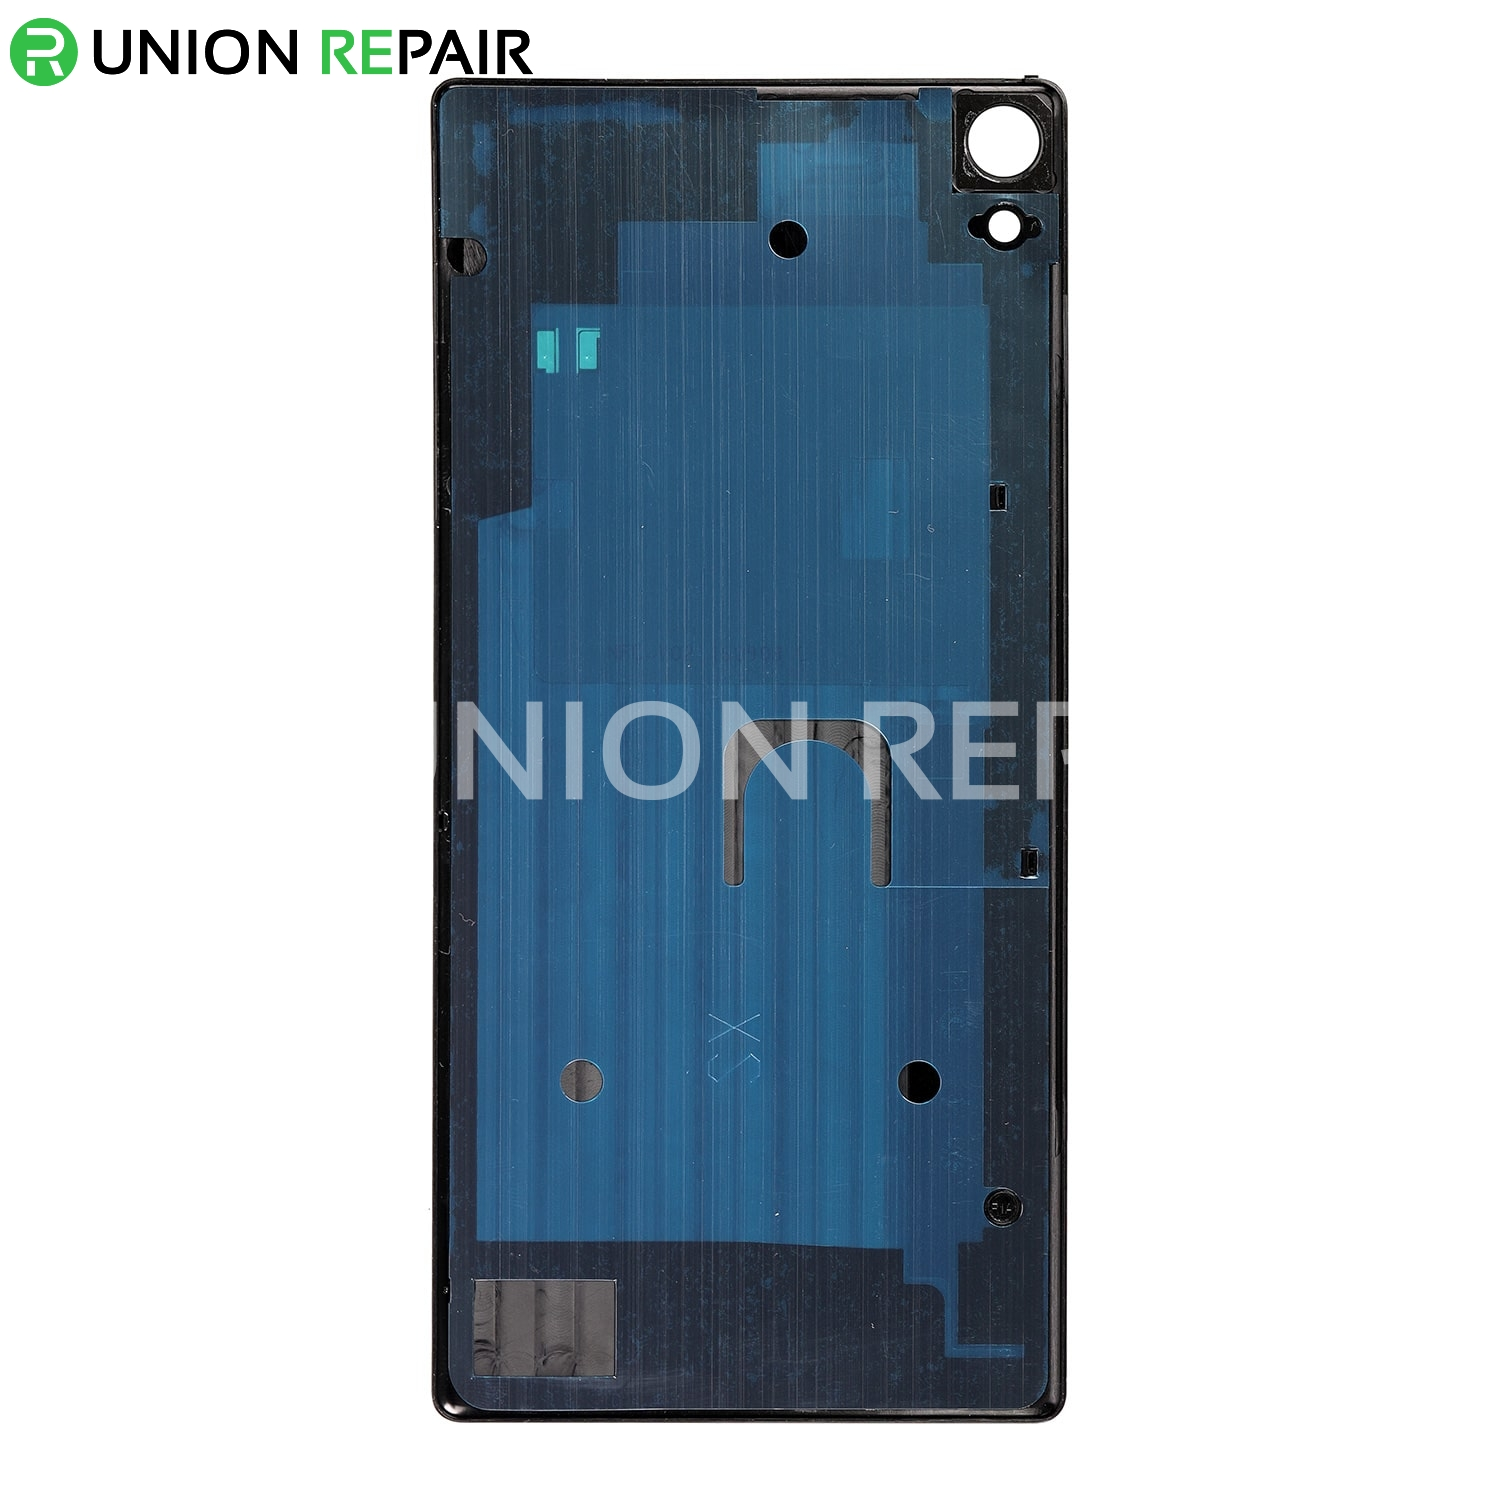 Replacement for Sony Xperia XA Ultra Battery Door - Graphite Black